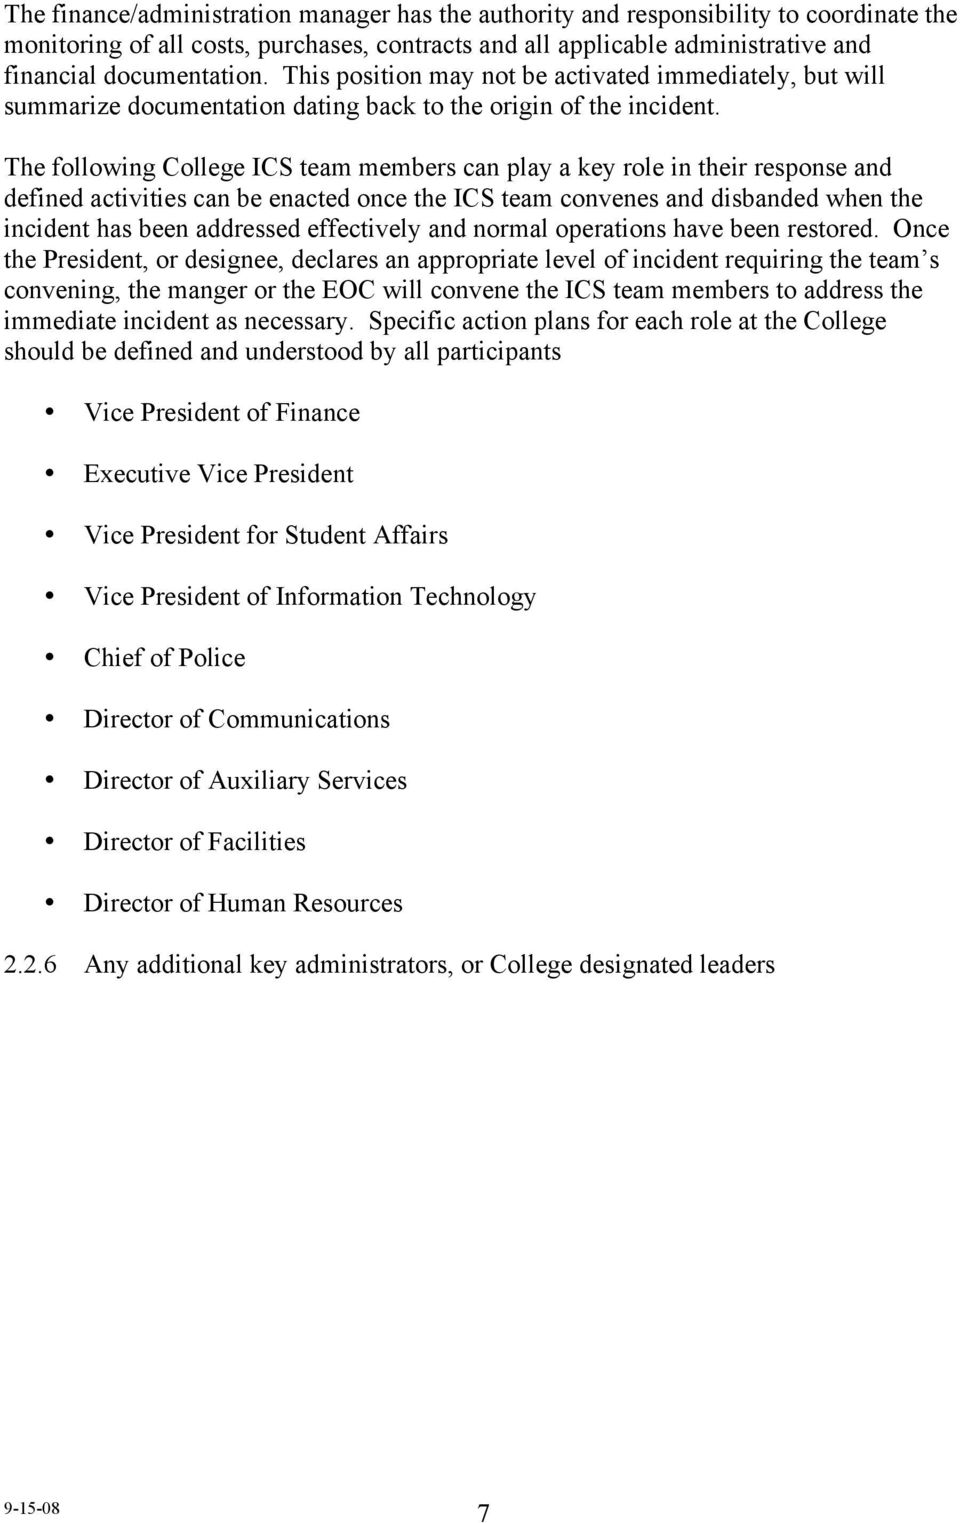 The following College ICS team members can play a key role in their response and defined activities can be enacted once the ICS team convenes and disbanded when the incident has been addressed